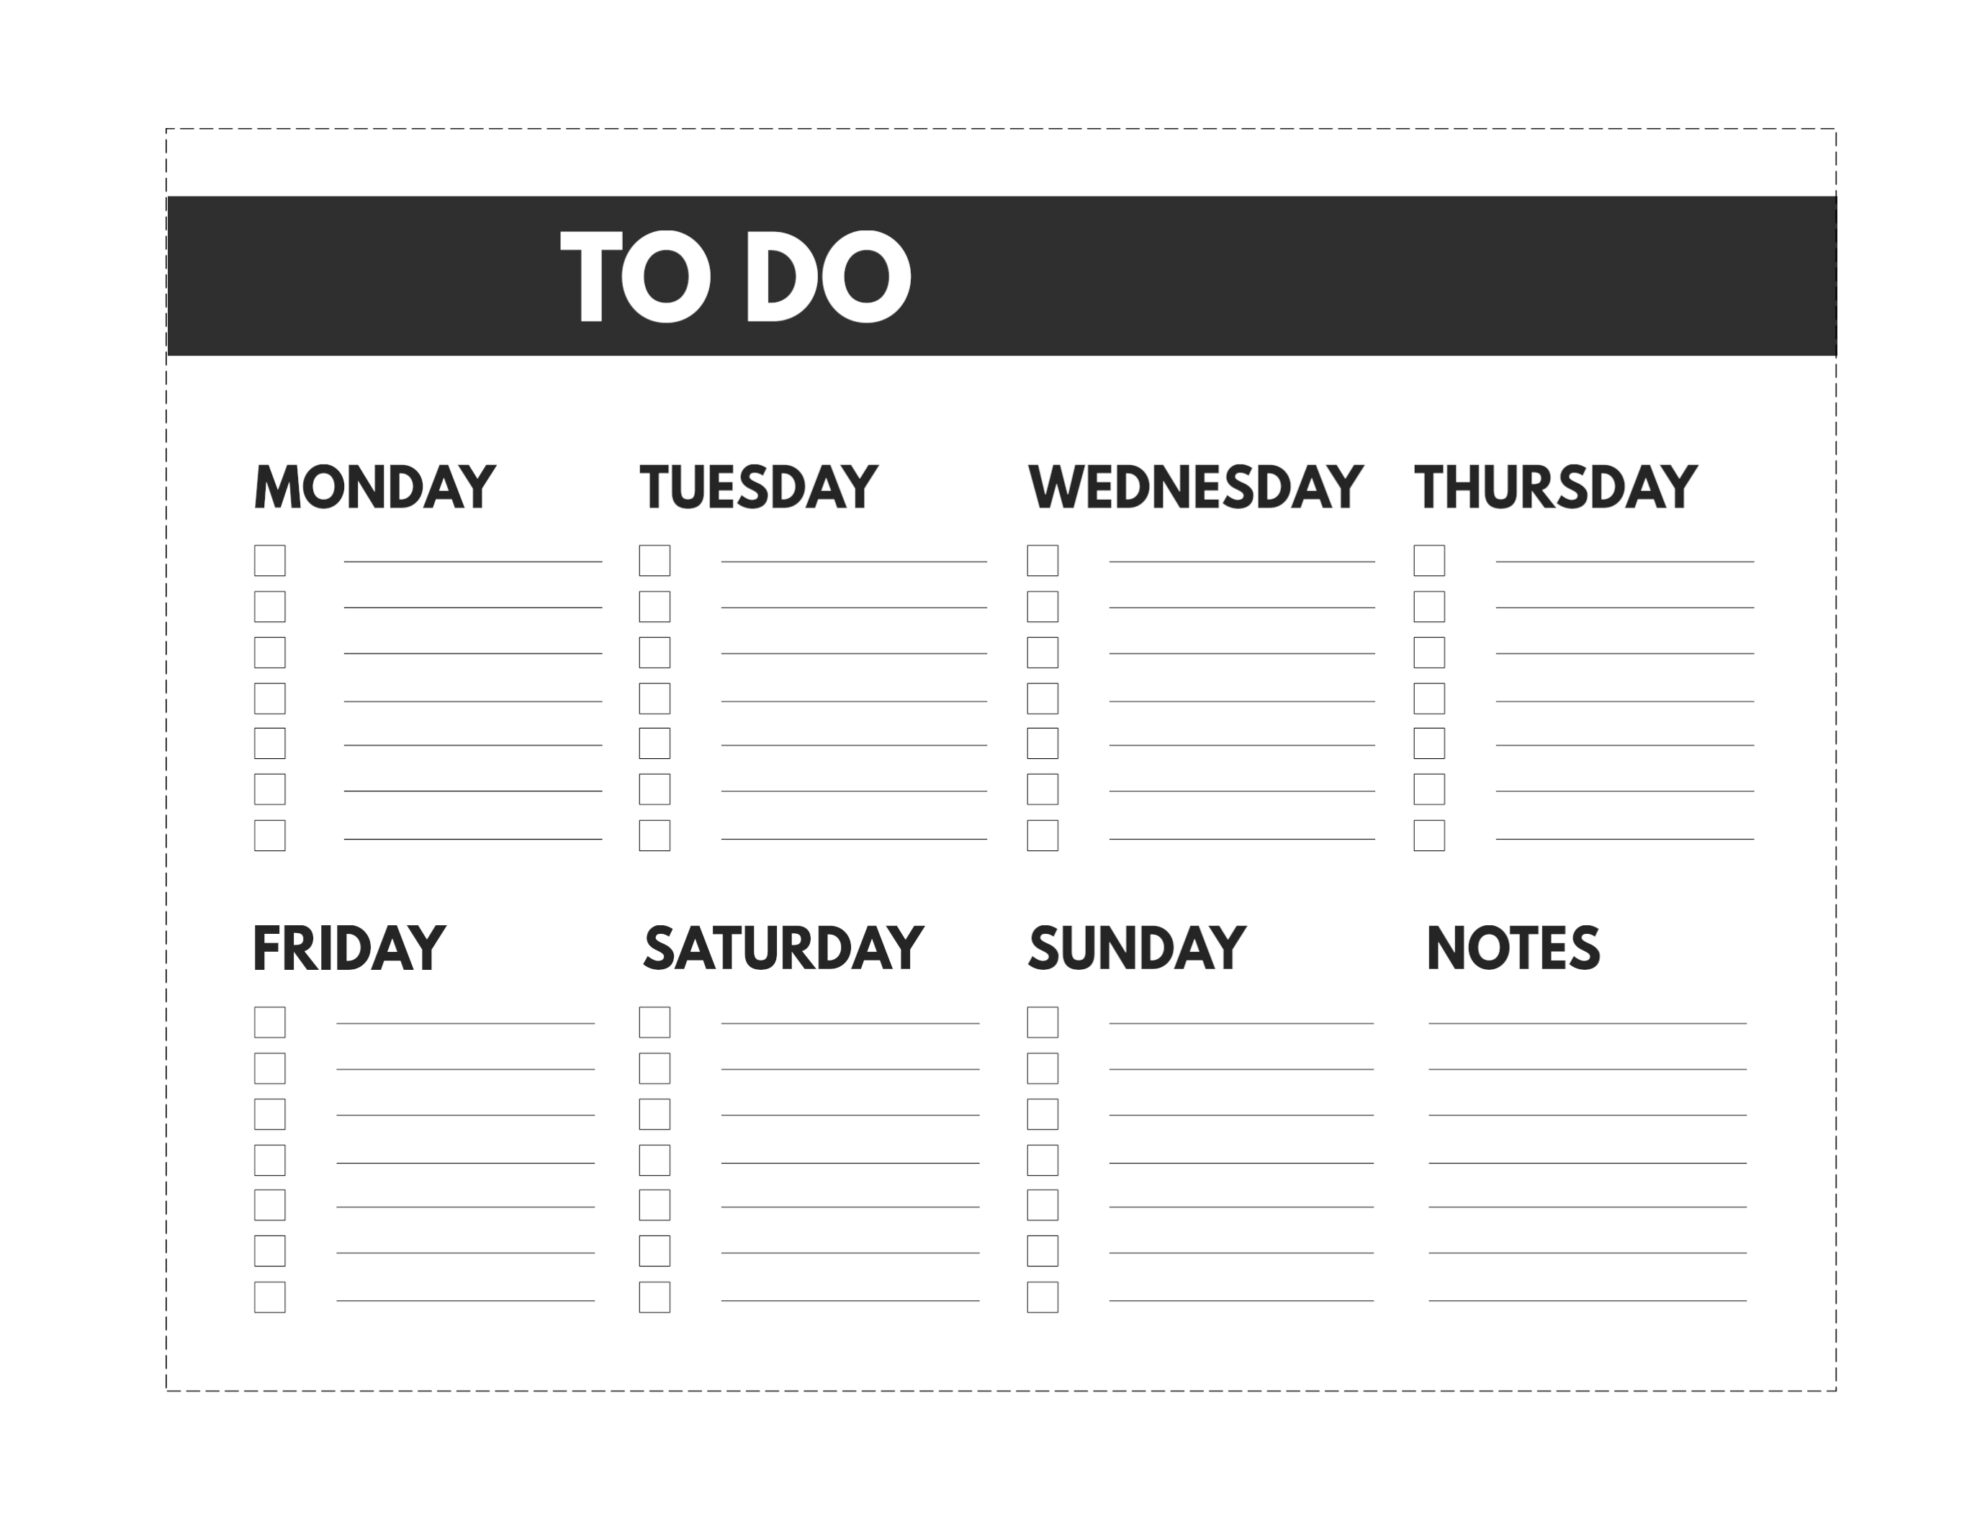 Free Printable Weekly To Do List | Paper Trail Design